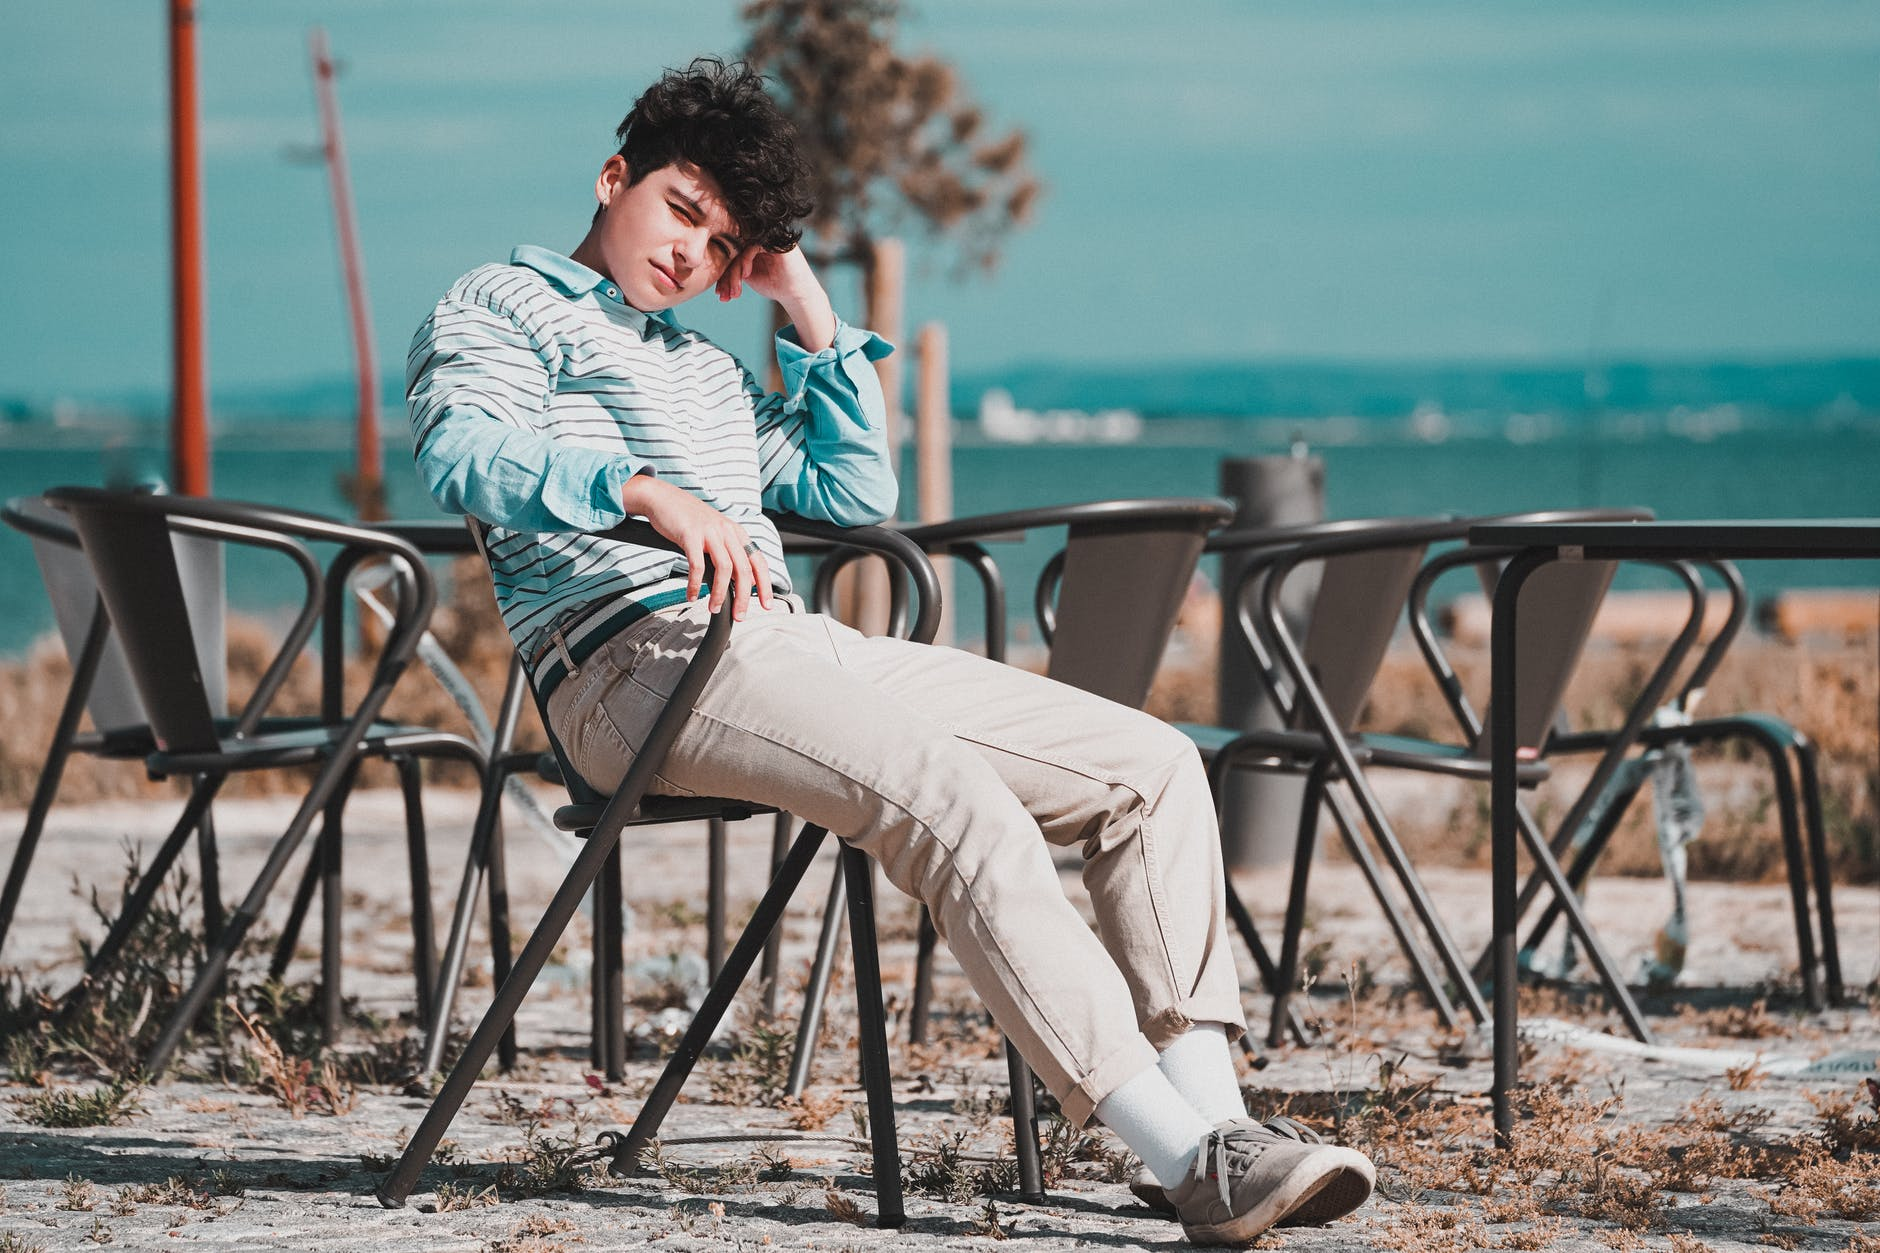 Beach Outfit Ideas For Men